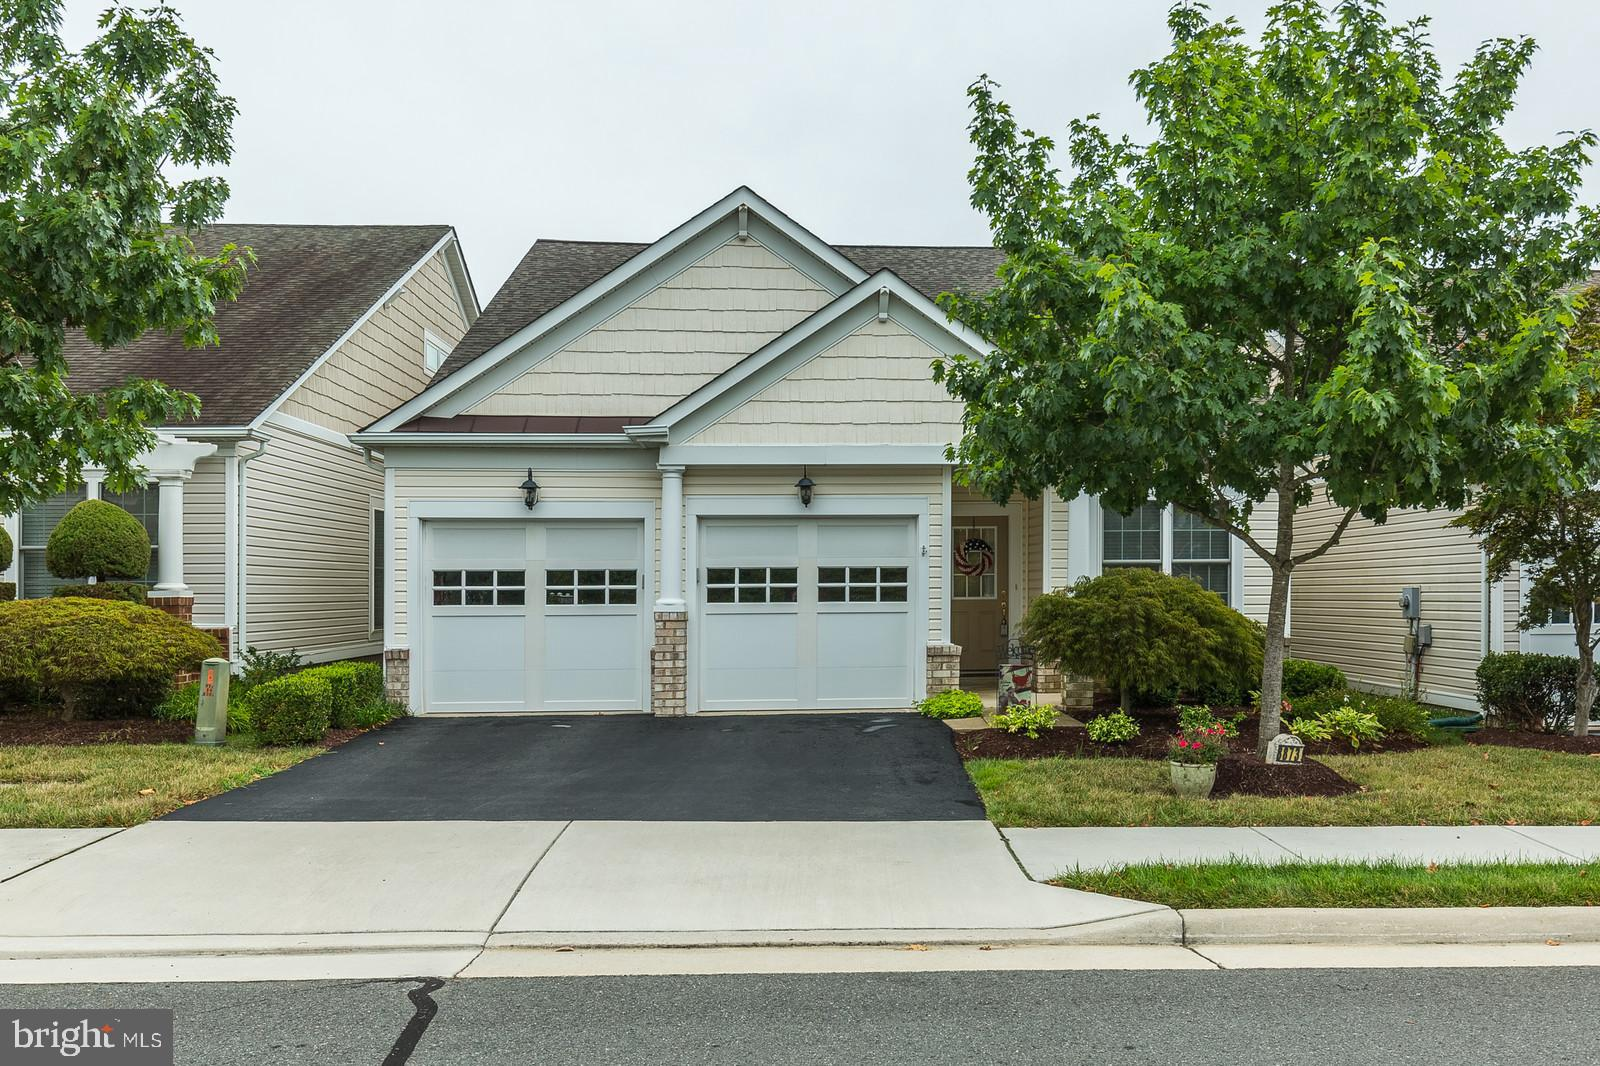 Somerset Model with Loft and extra office! So many updates. Welcome home to the much desired 55+ community of Spring Hill in Lorton!  New Roof (2016), New Furnace/AC/Water Heater (2018), New Washer/Dryer (2018), New Sunsetter Retractable Awning (2018). This popular Somerset model, 3bd/3bath with loft and bonus office is a main-level living dream.  White Orchid features an open floor plan with ample natural light. Kitchen has granite counter tops, double ovens, and gas range. The kitchen opens to a bright family  room with vaulted ceilings. The master bedroom has tray ceilings and large en-suite bathroom.  Upstairs loft overlooks the family room, 3rd bedroom has private full bath. Relax and stay cool on your deck with retractable awning.  Enjoy indoor swimming, exercise classes, and gathering with friends in the clubhouse.  Close to Workhouse Art Center,  VRE is less than 3 miles. Buses to VRE and Springfield Metro Station. INOVA Healthplex is less than 2 miles.